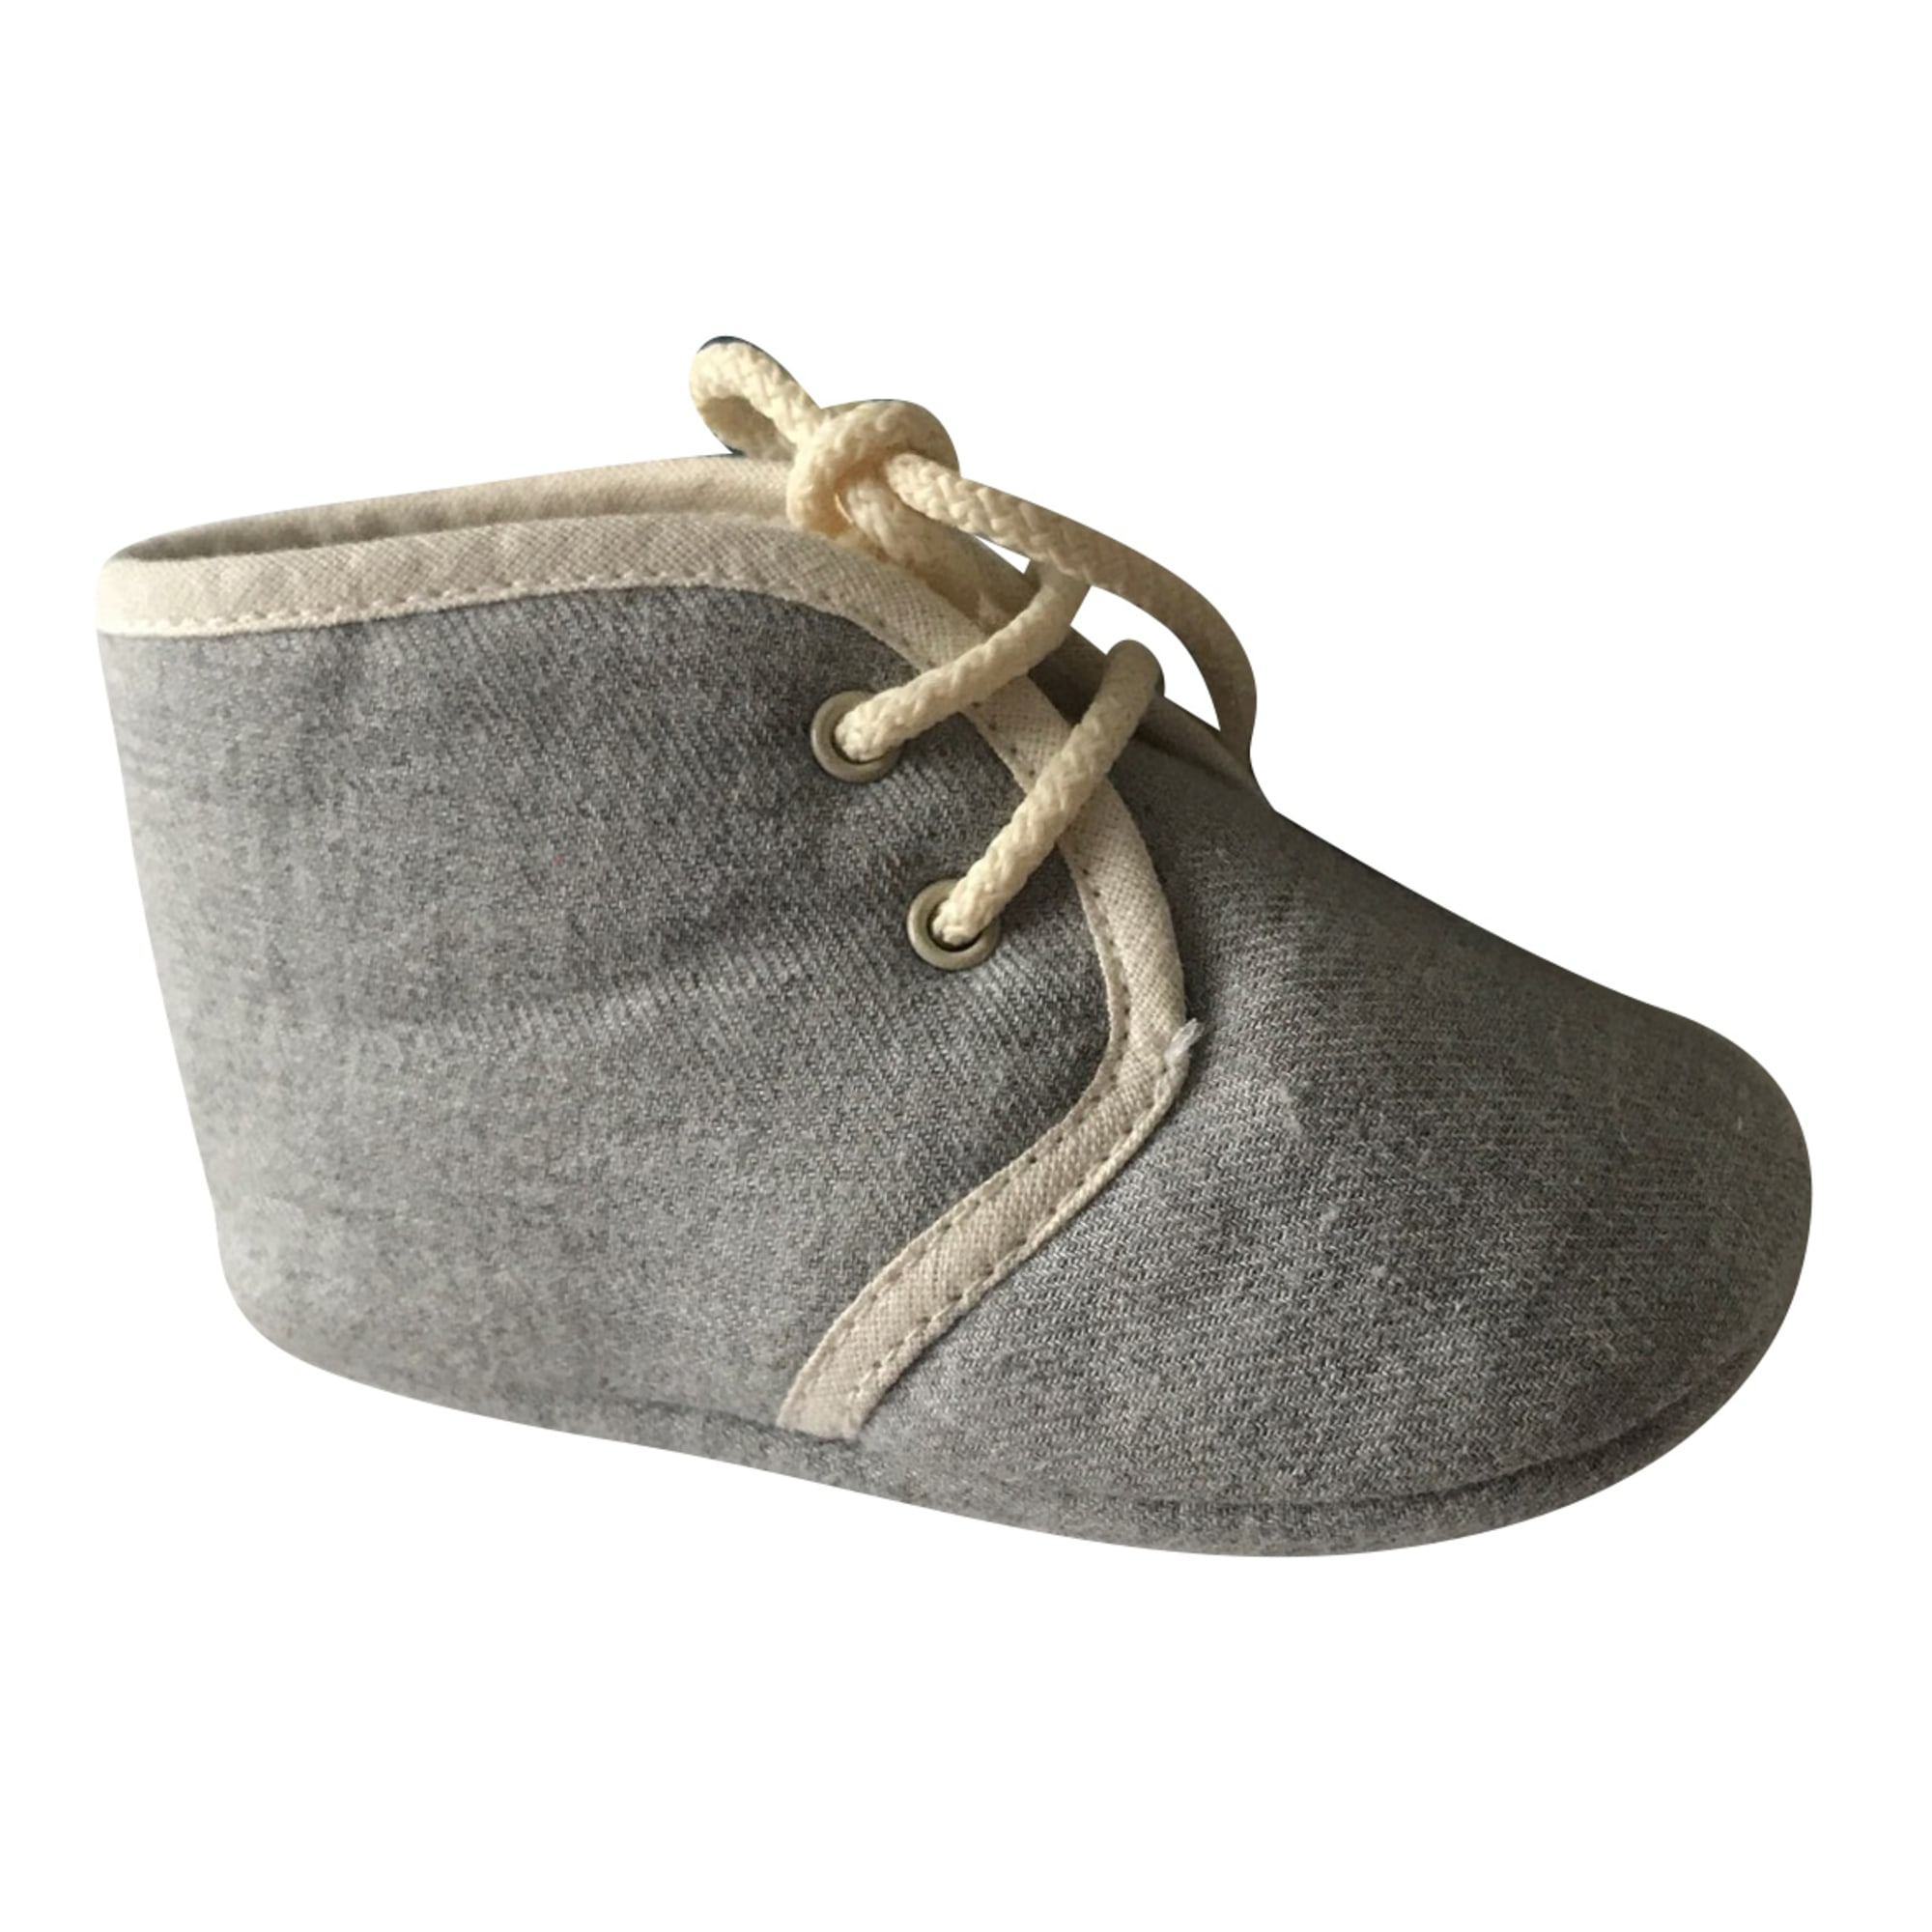 Sneakers BABY DIOR Gray, charcoal